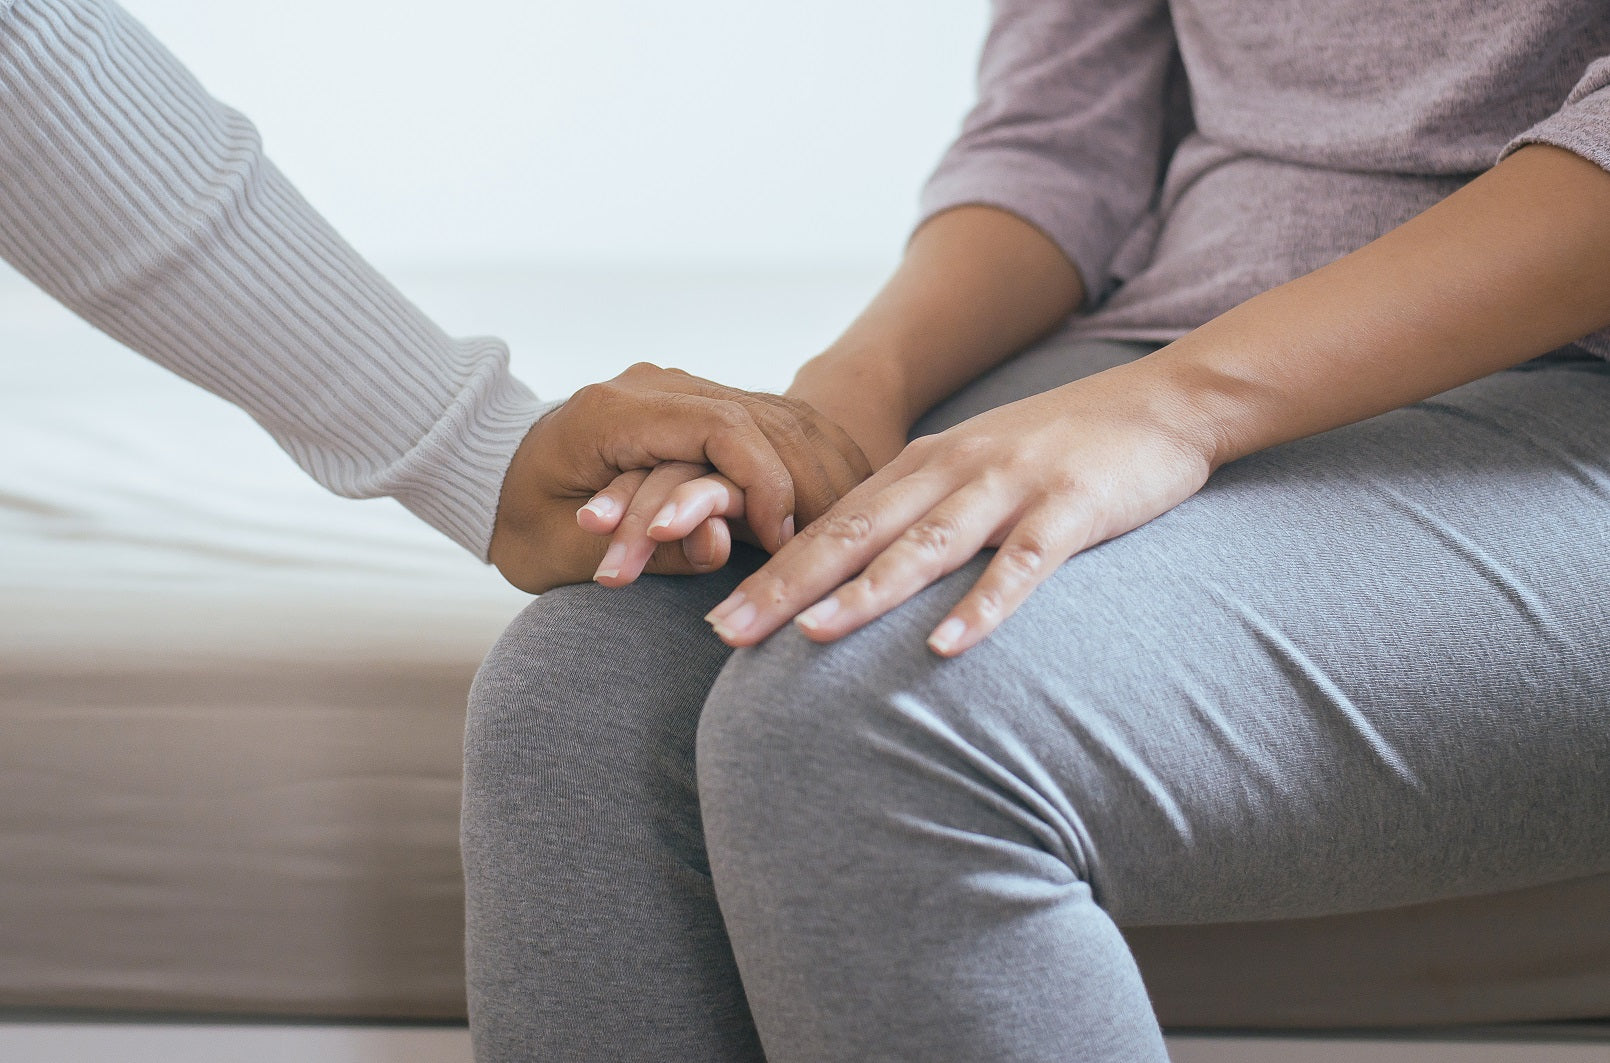 Two people hold hands at doctor's office